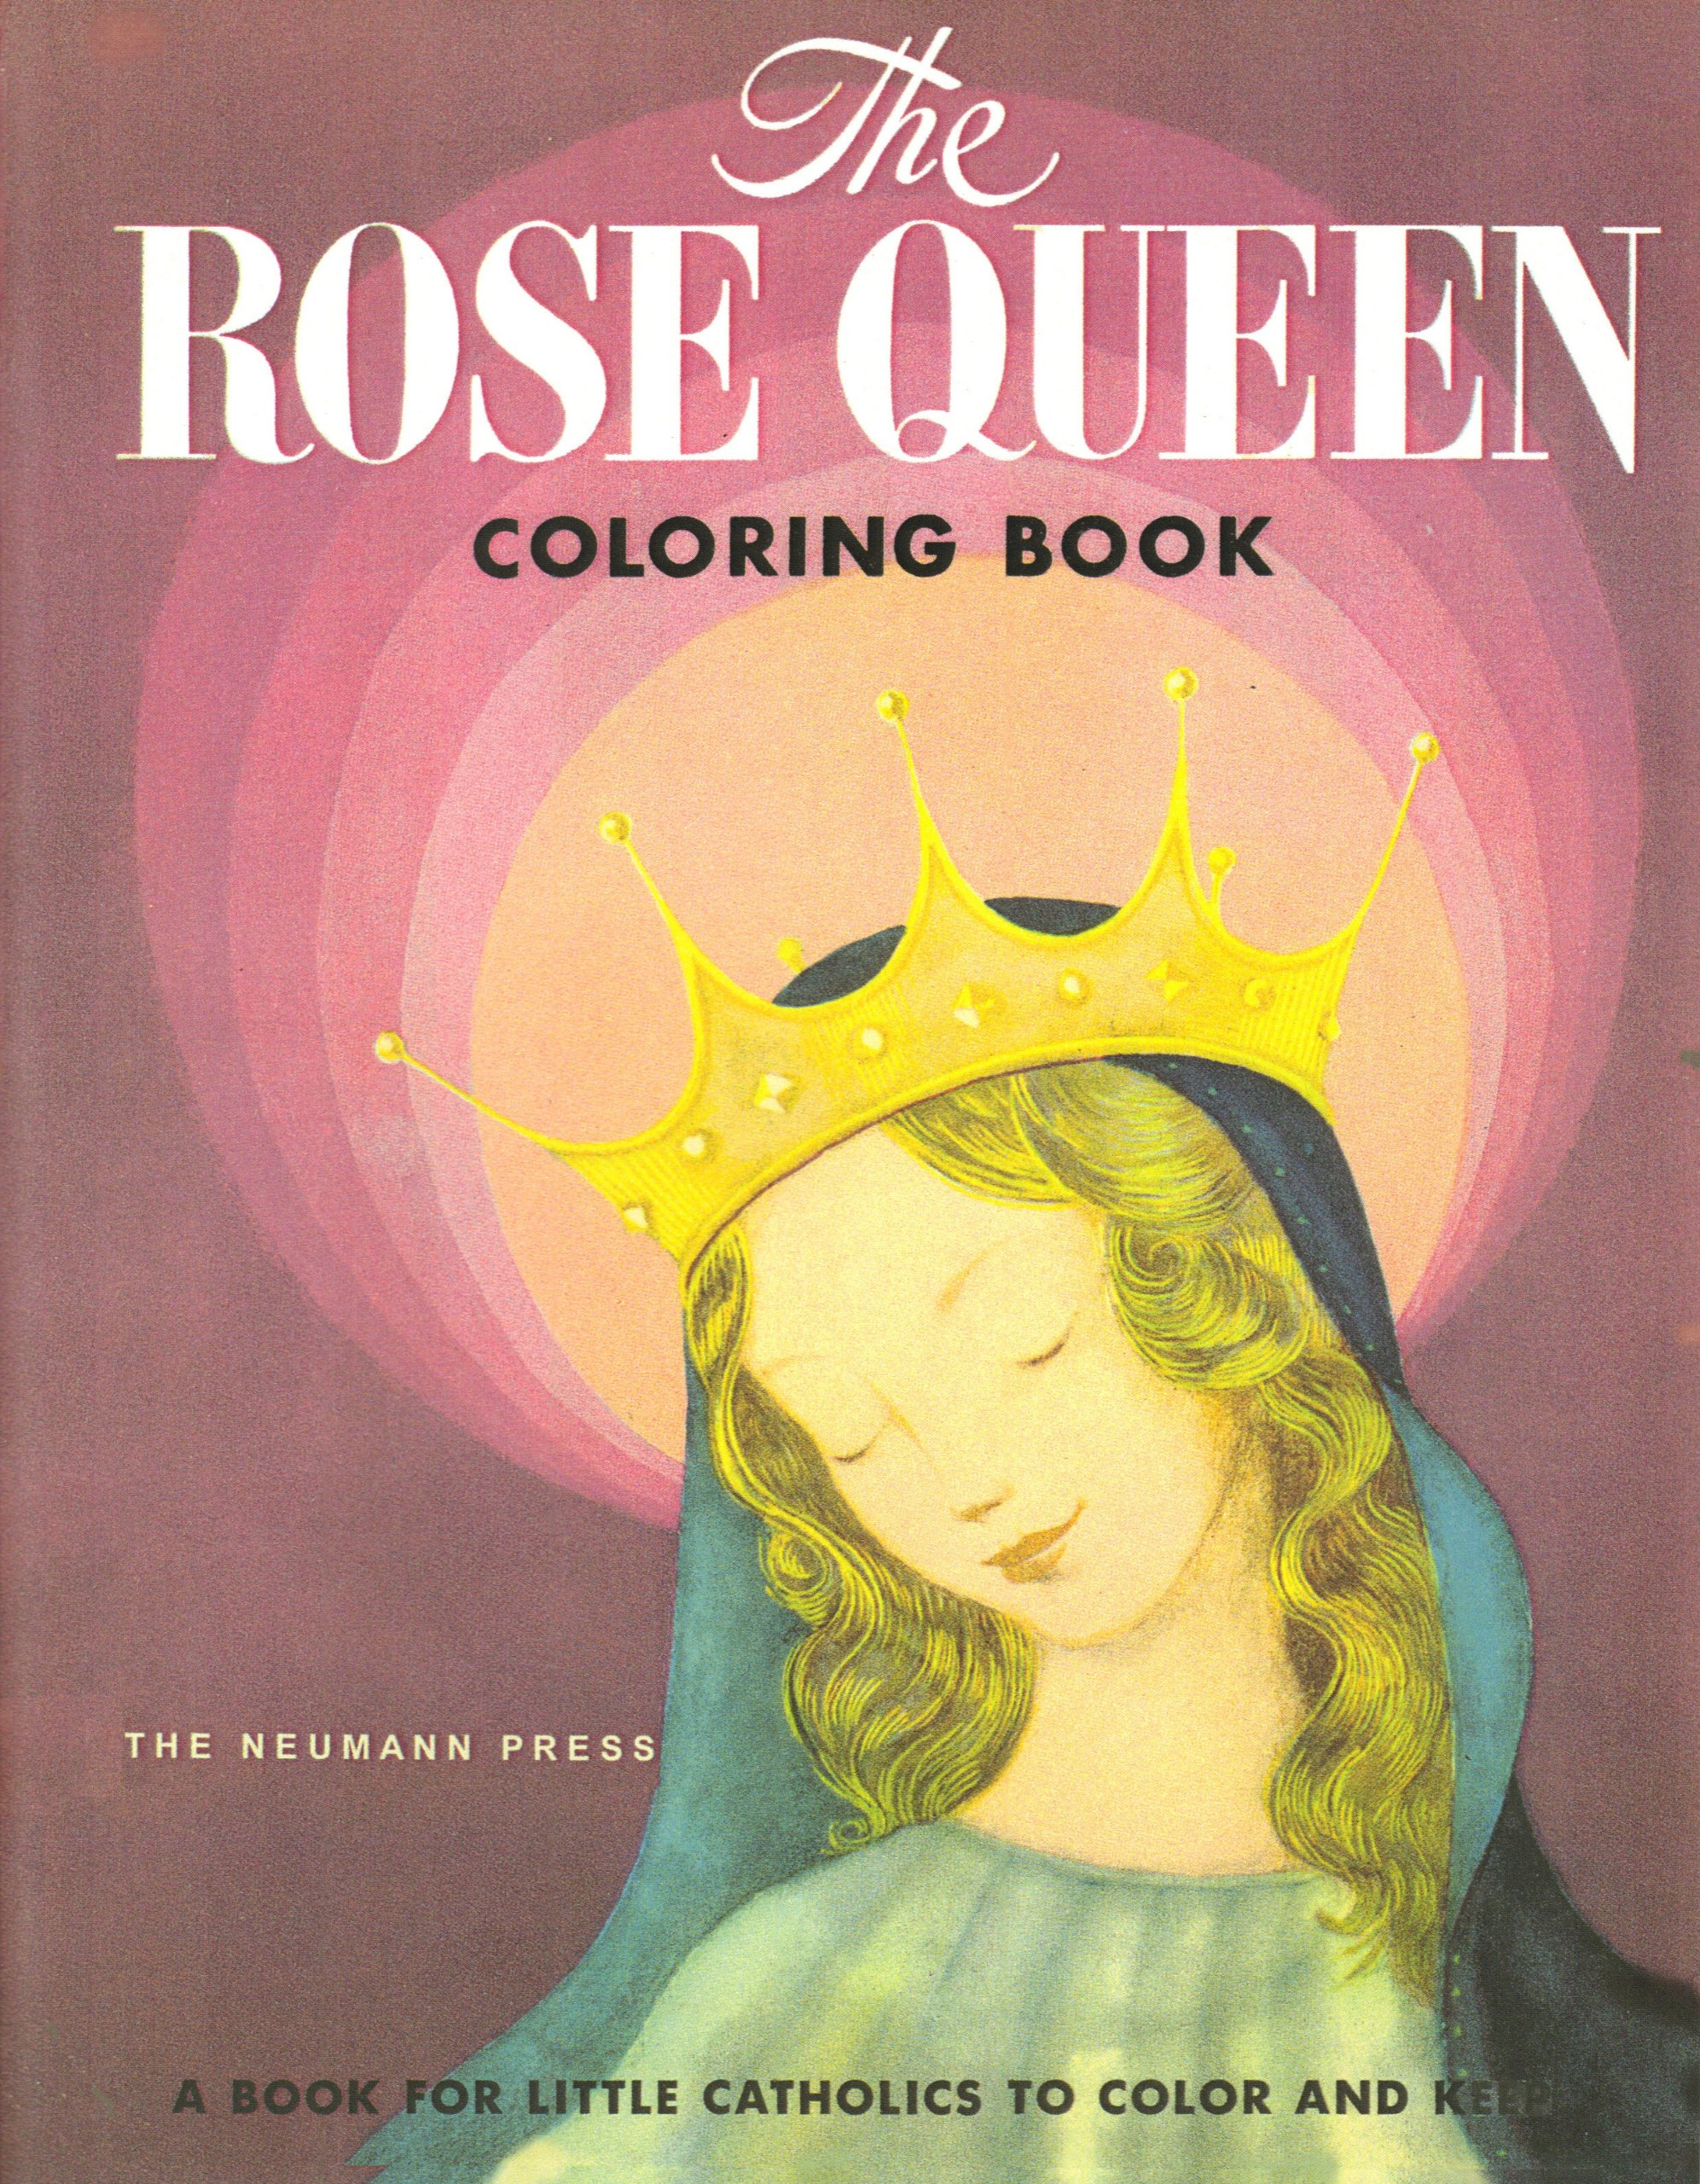 The Rose Queen Coloring Book